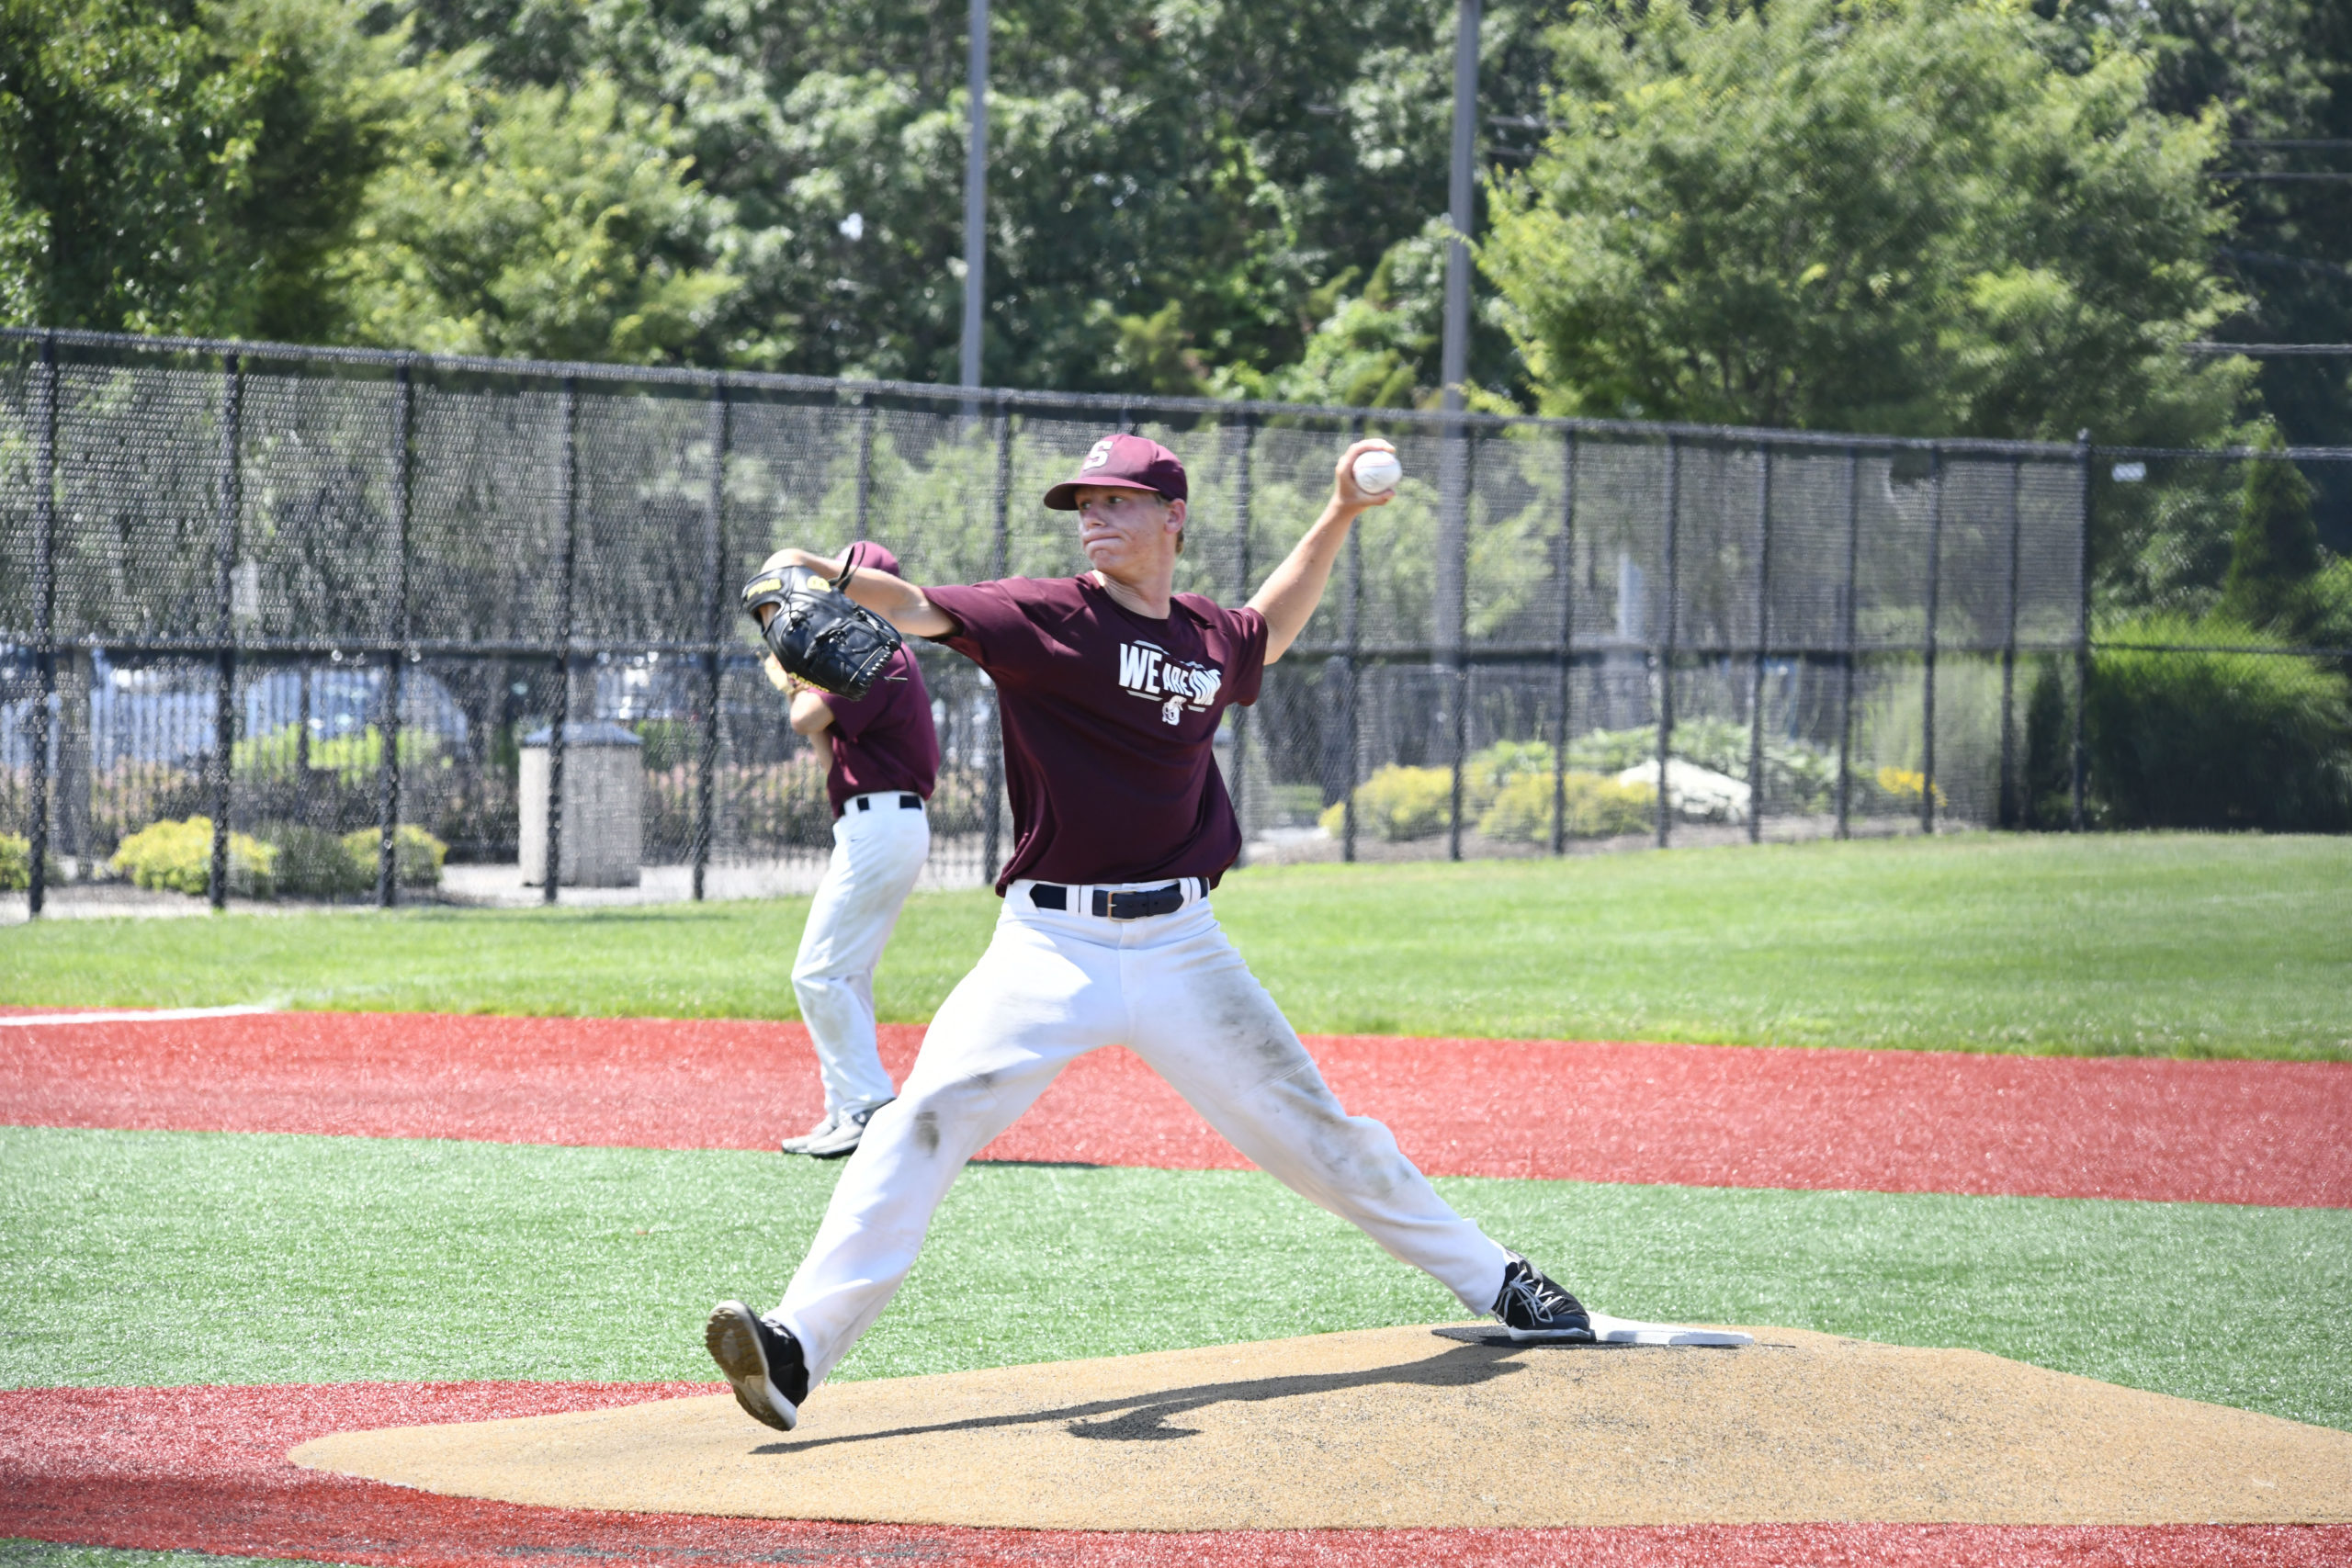 The Southampton and Pierson High School baseball teams faced off against each other in Moriches on Monday. DANA SHAW